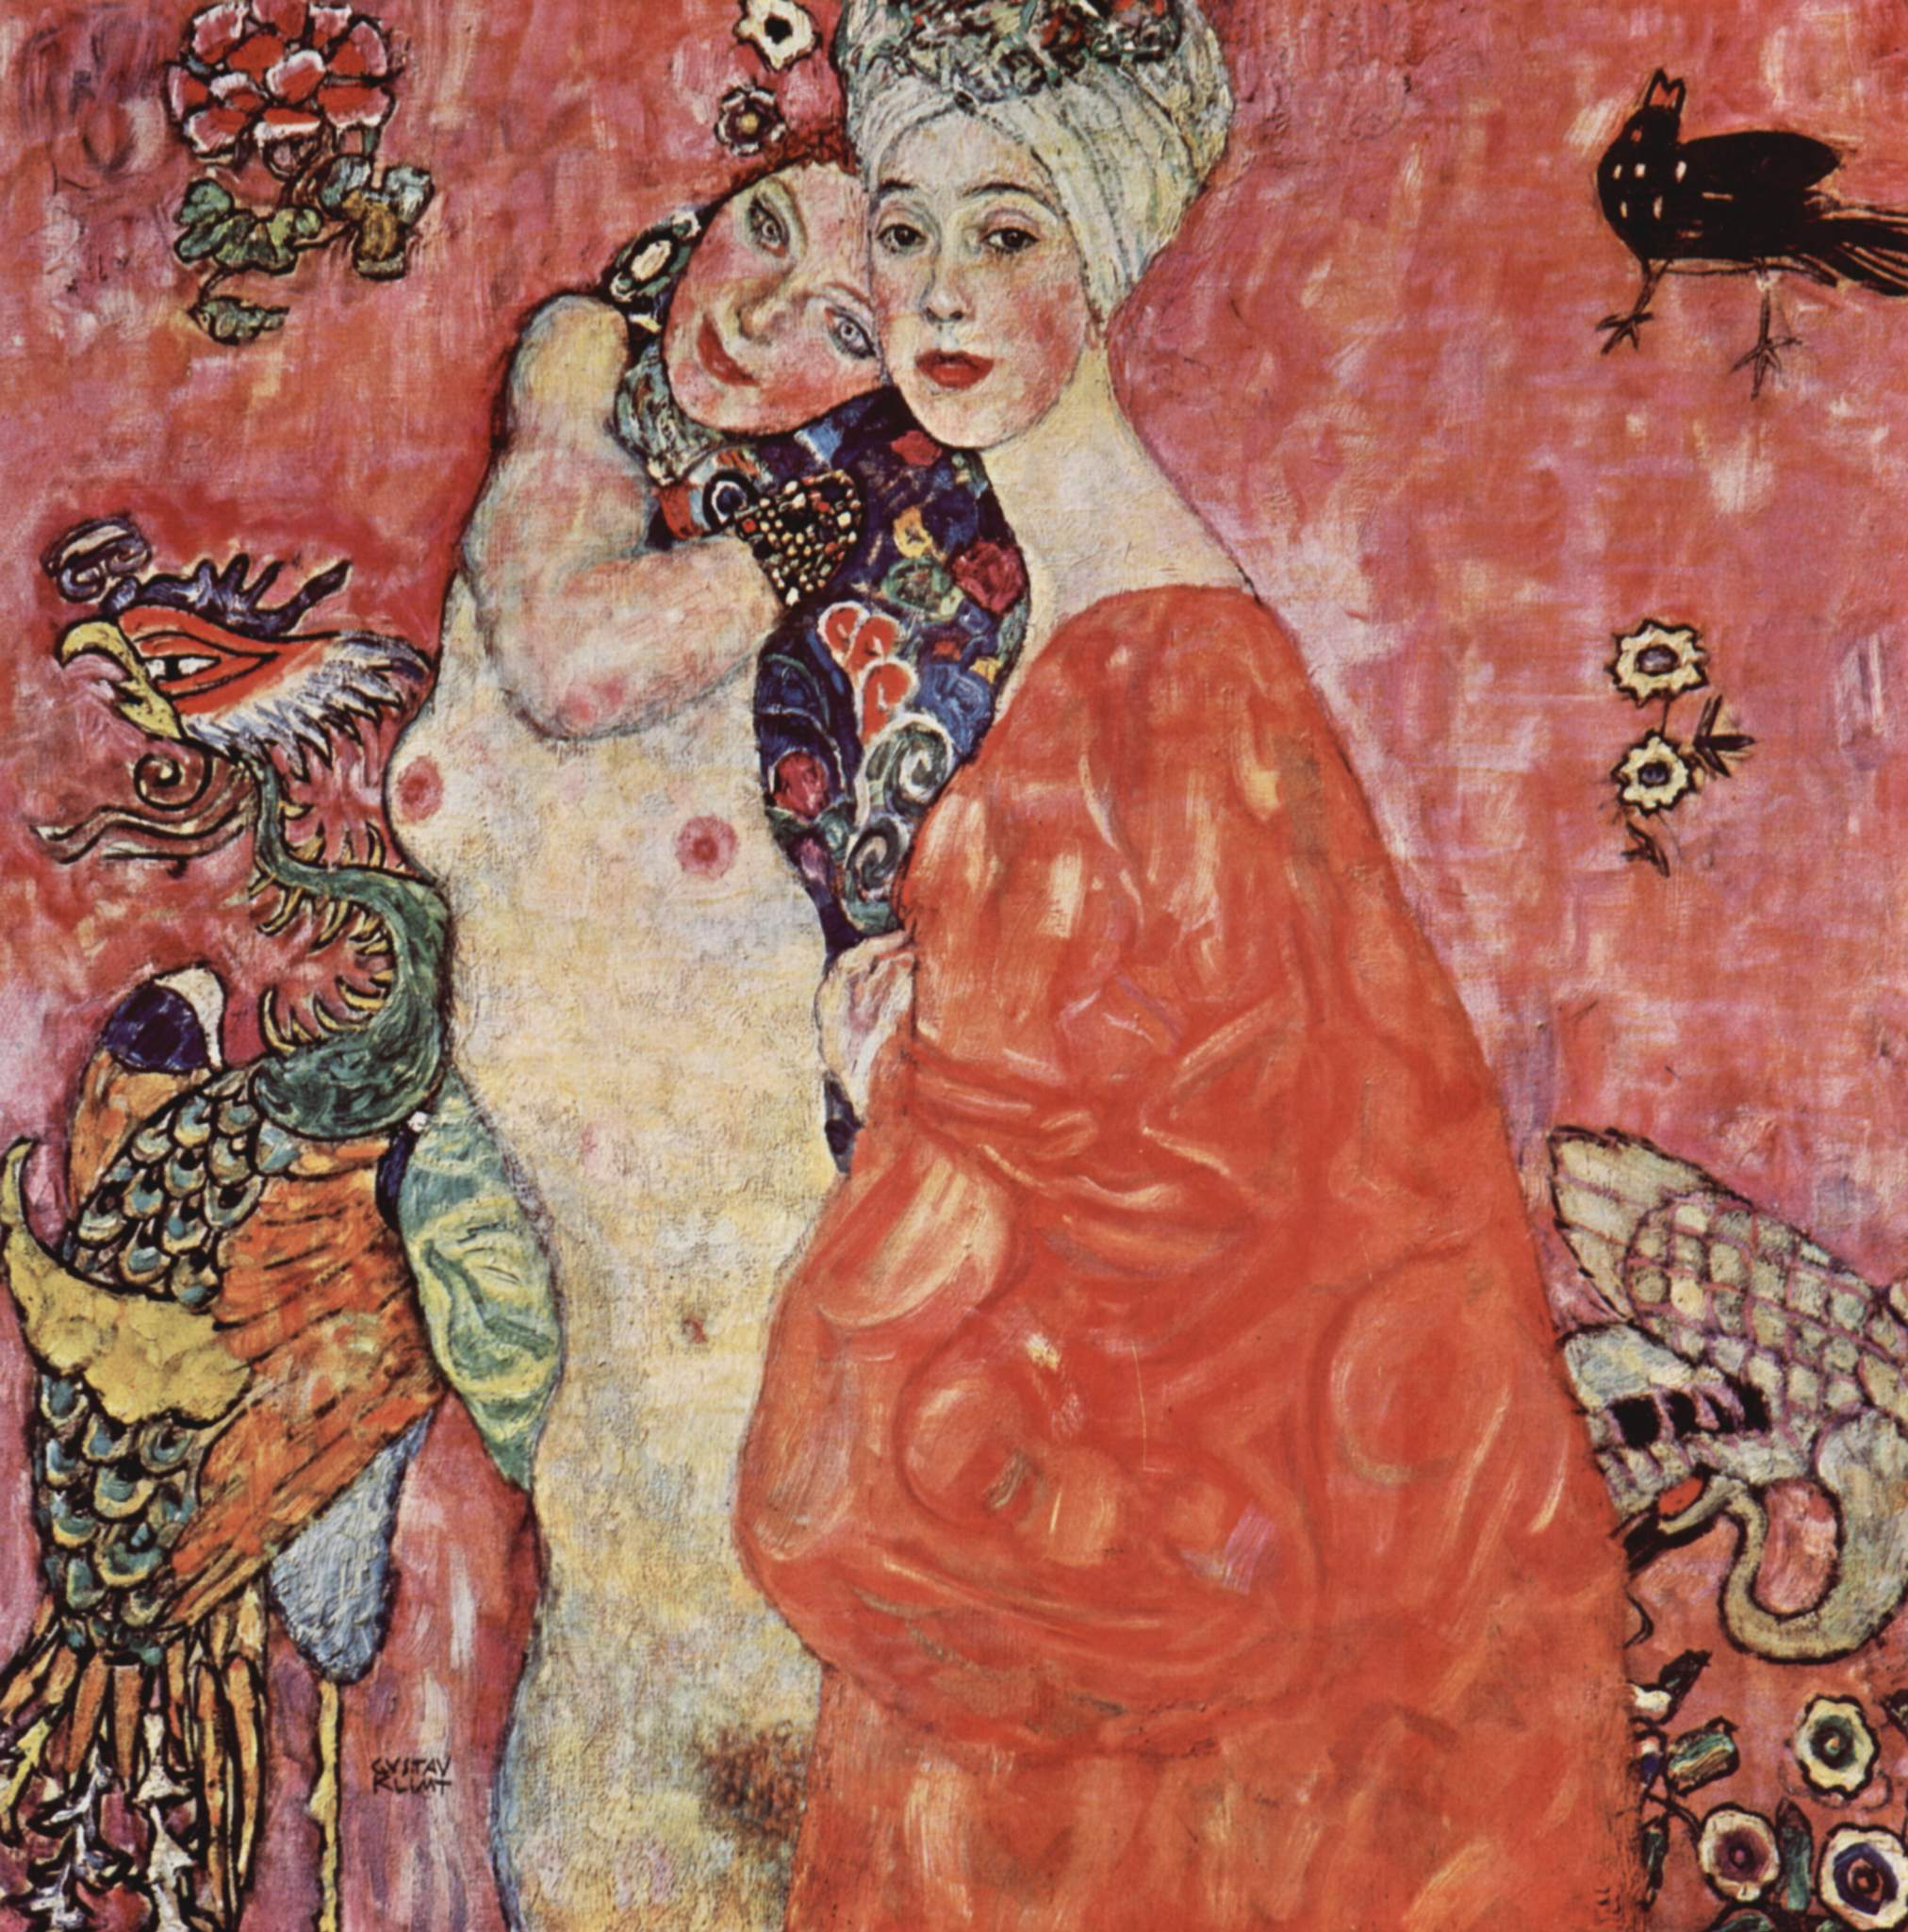 http://upload.wikimedia.org/wikipedia/commons/c/cd/Gustav_Klimt_021.jpg